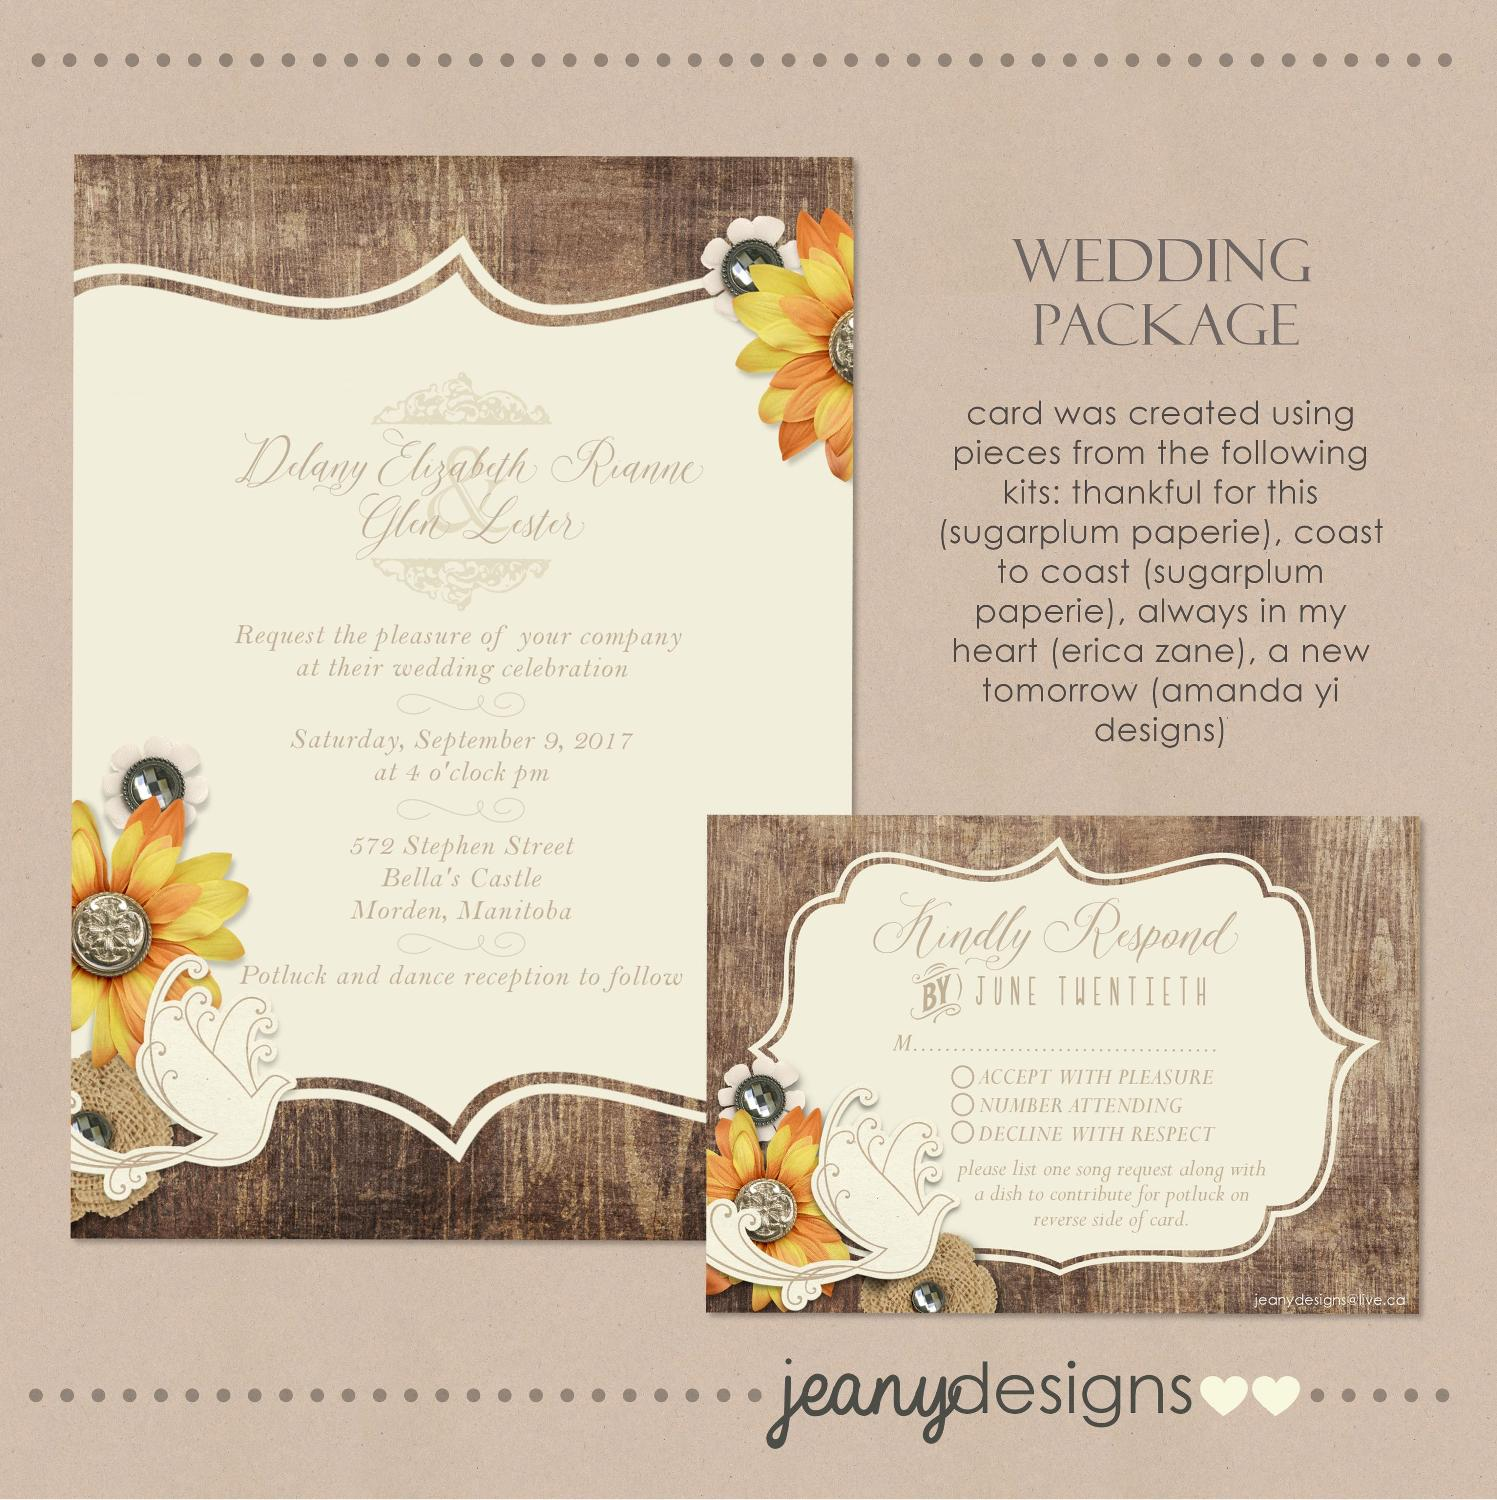 Best Wedding Invitations for sale in Winkler, Manitoba for 2018